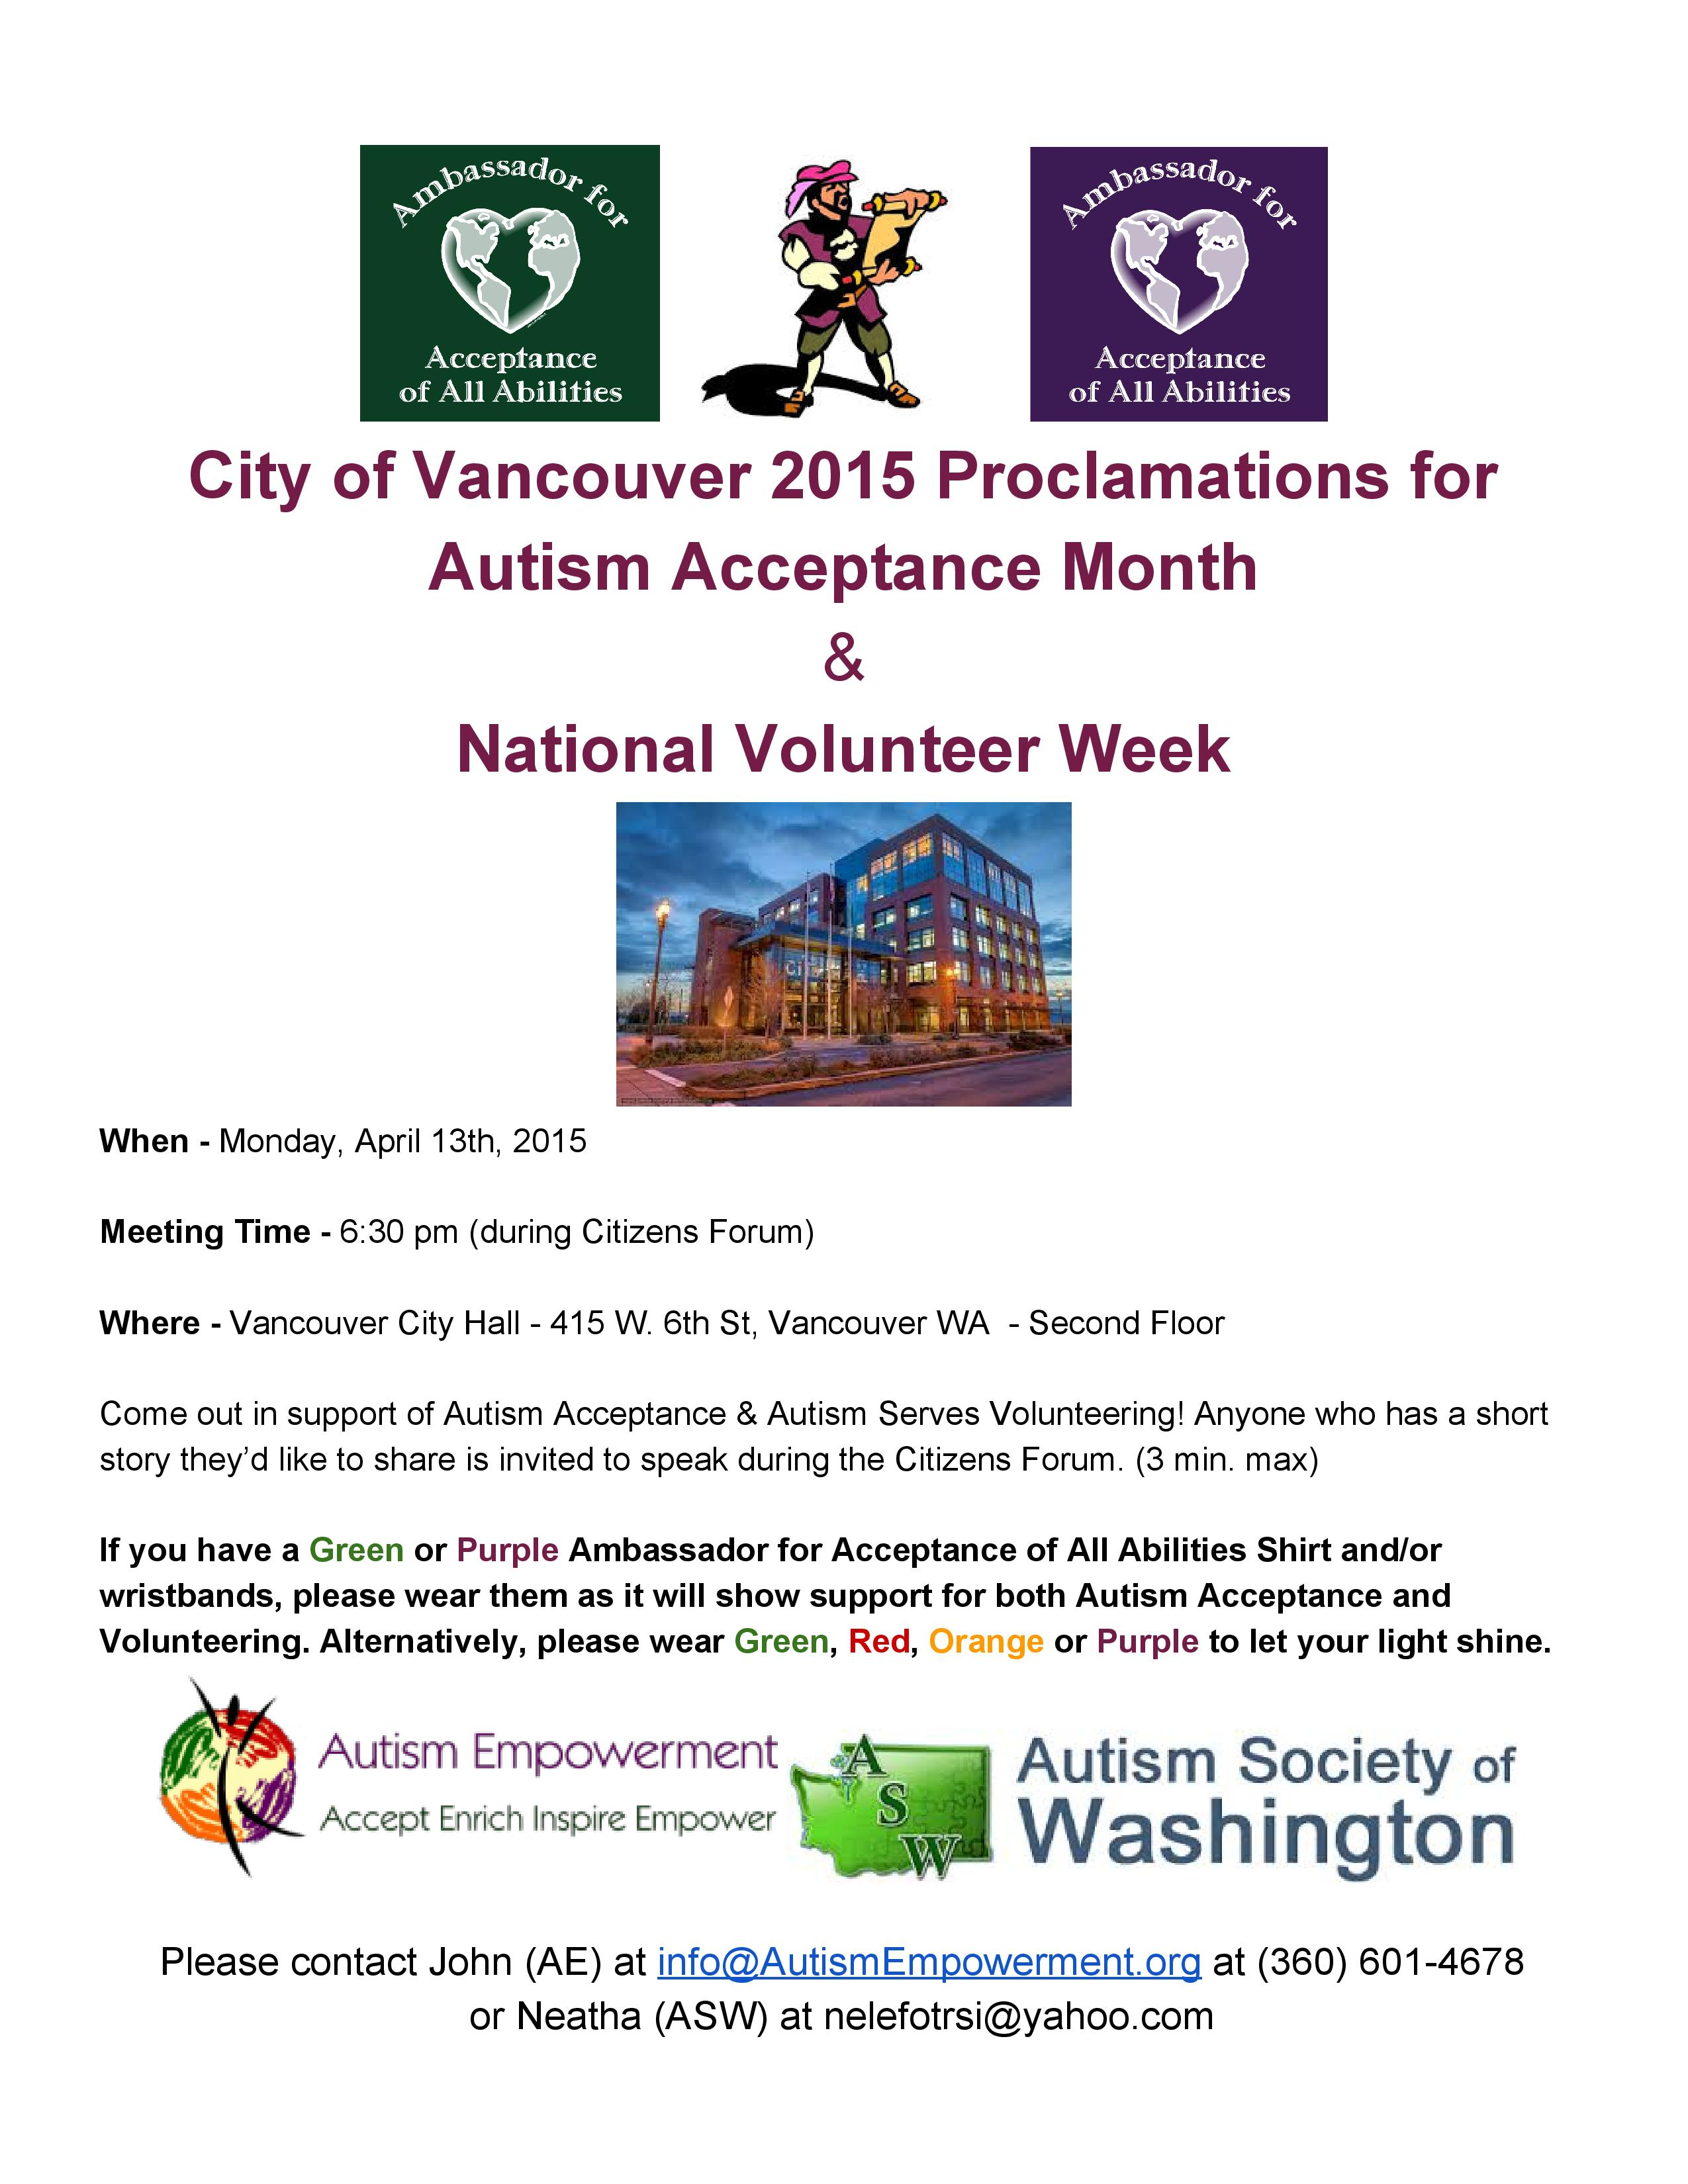 2015 Autism Acceptance Month Proclamation in Vancouver